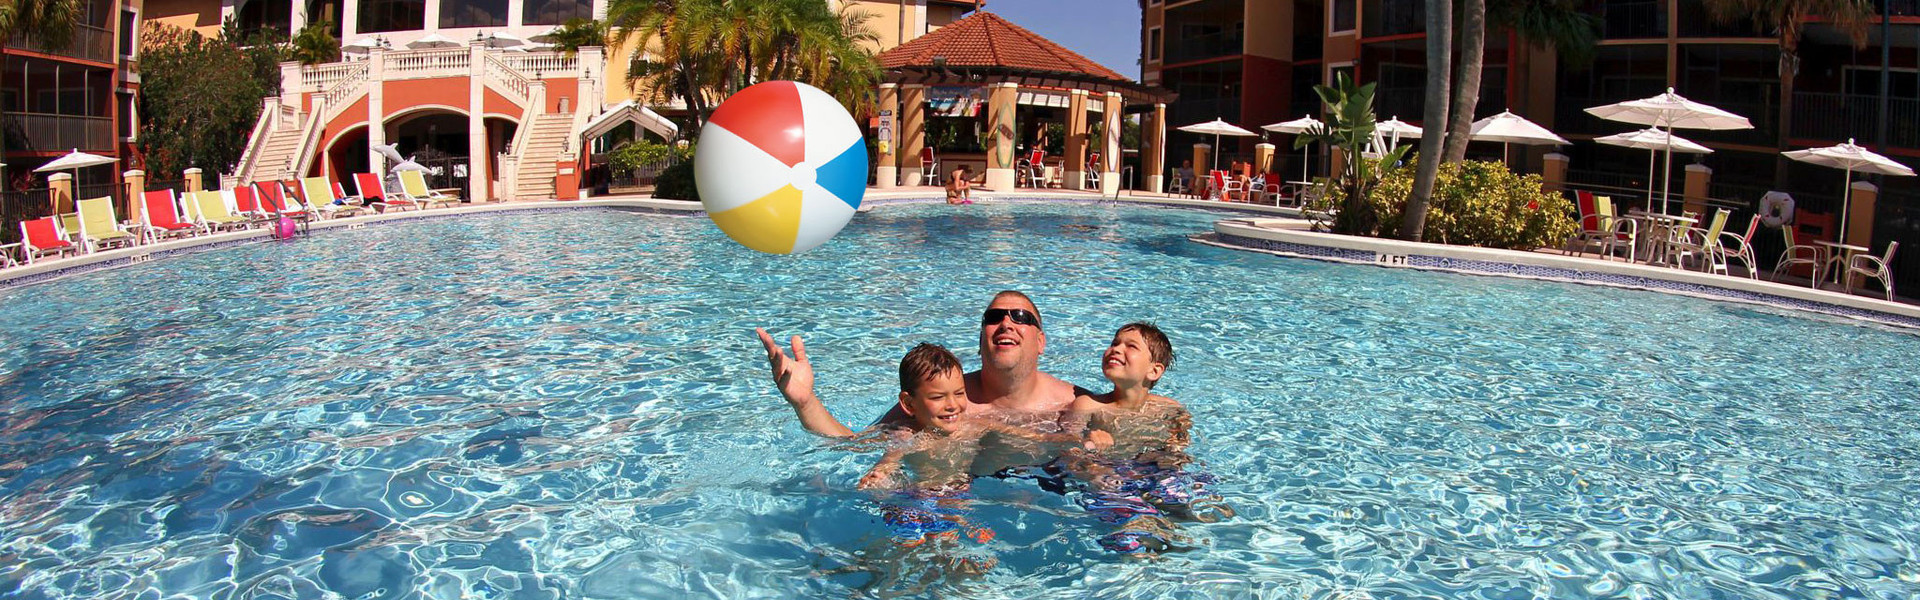 Relaxing at Our Orlando Resort | Reviews and Hotel Ratings | Reviews of Westgate Lakes Resort & Spa